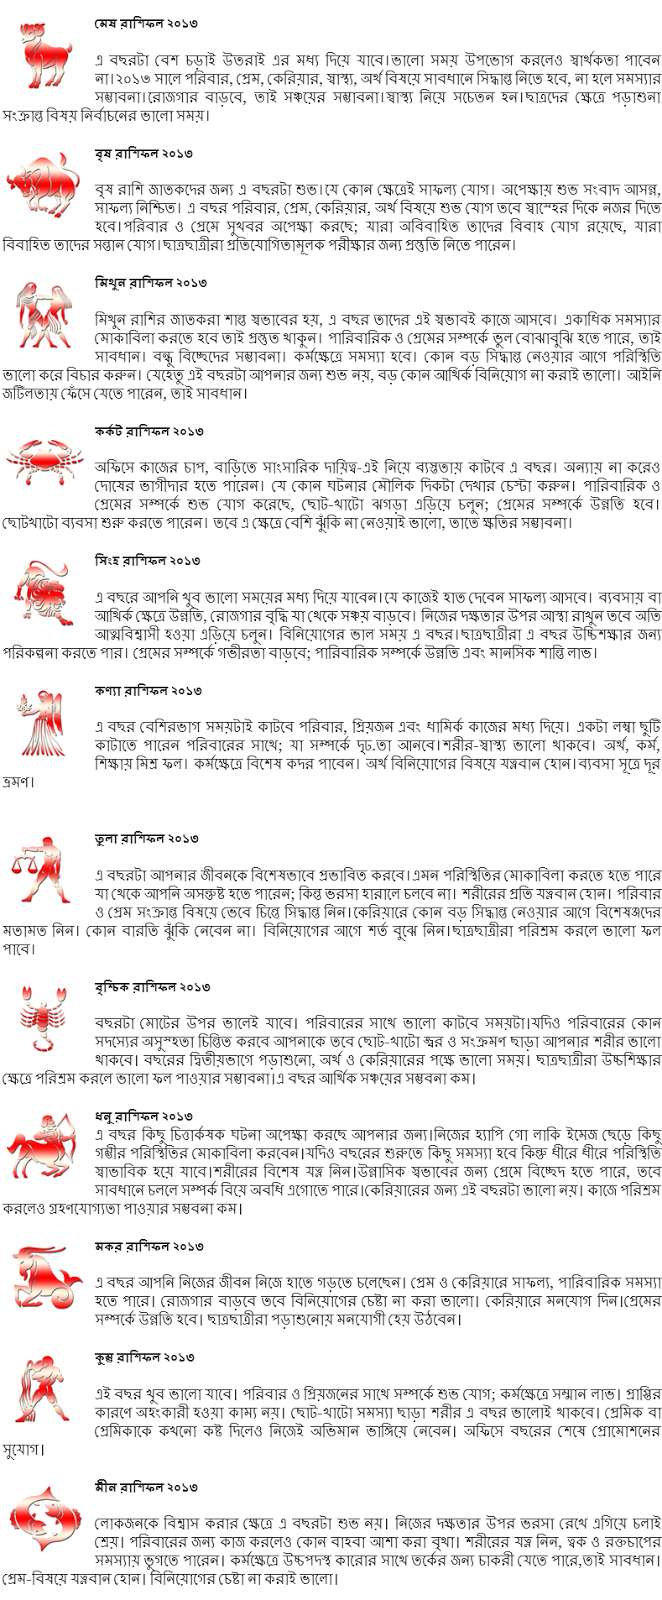 The Bengali Horoscope For The Year 2013 On Request.This Is Astrological  Prediction Of All The Zodiac Sign [sabhi Rashi Ka Fal] In Bengali Language  For The ...